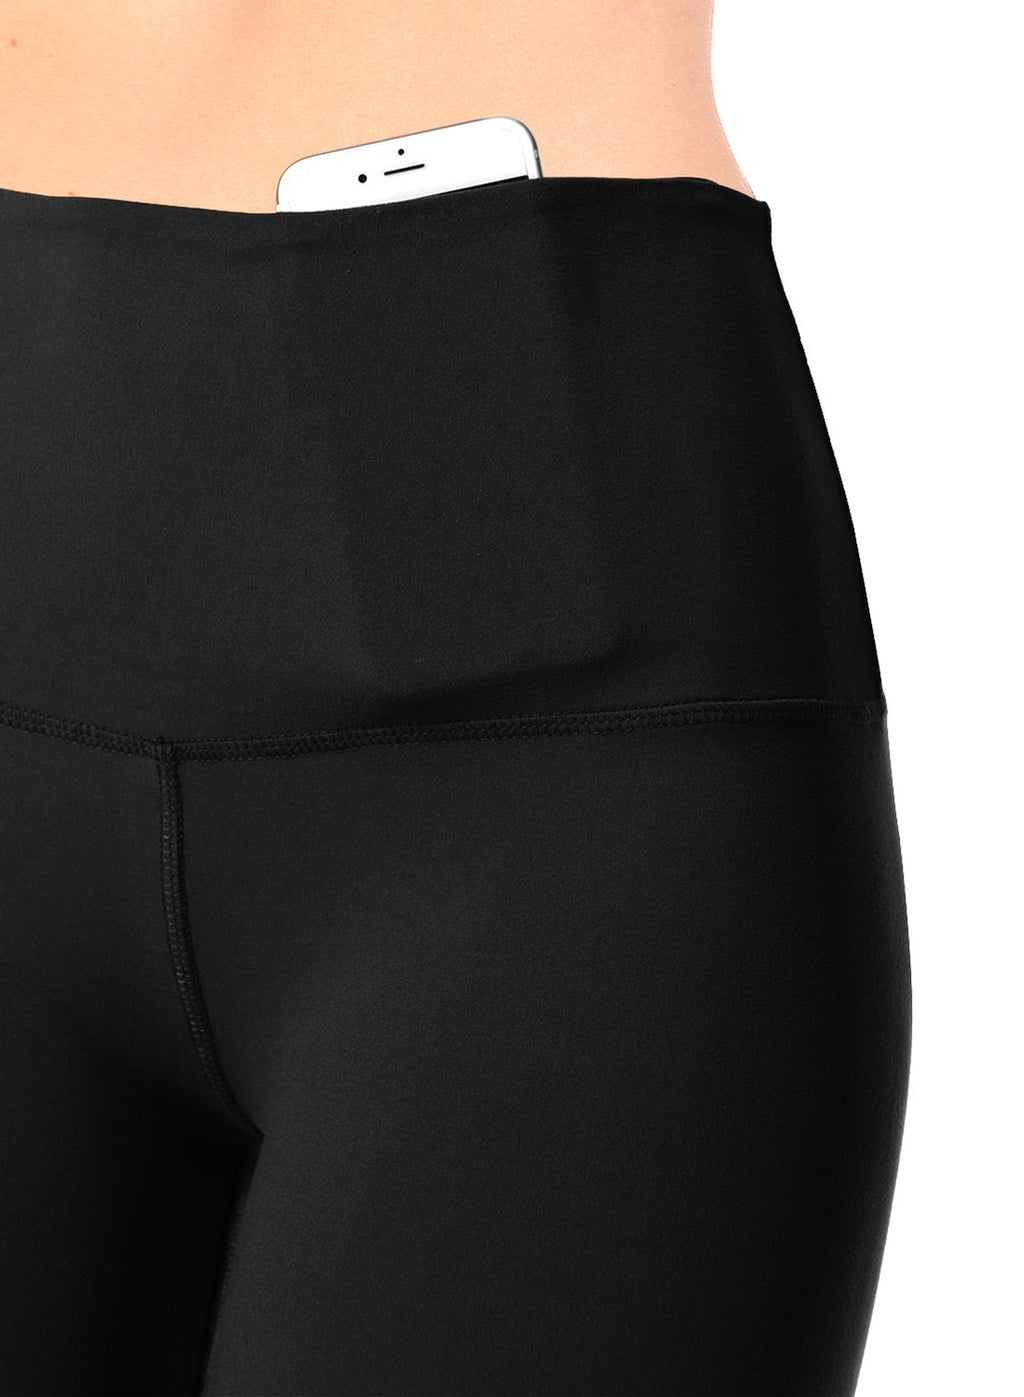 Black/Dark Grey Leggings with High Yoga Waistband